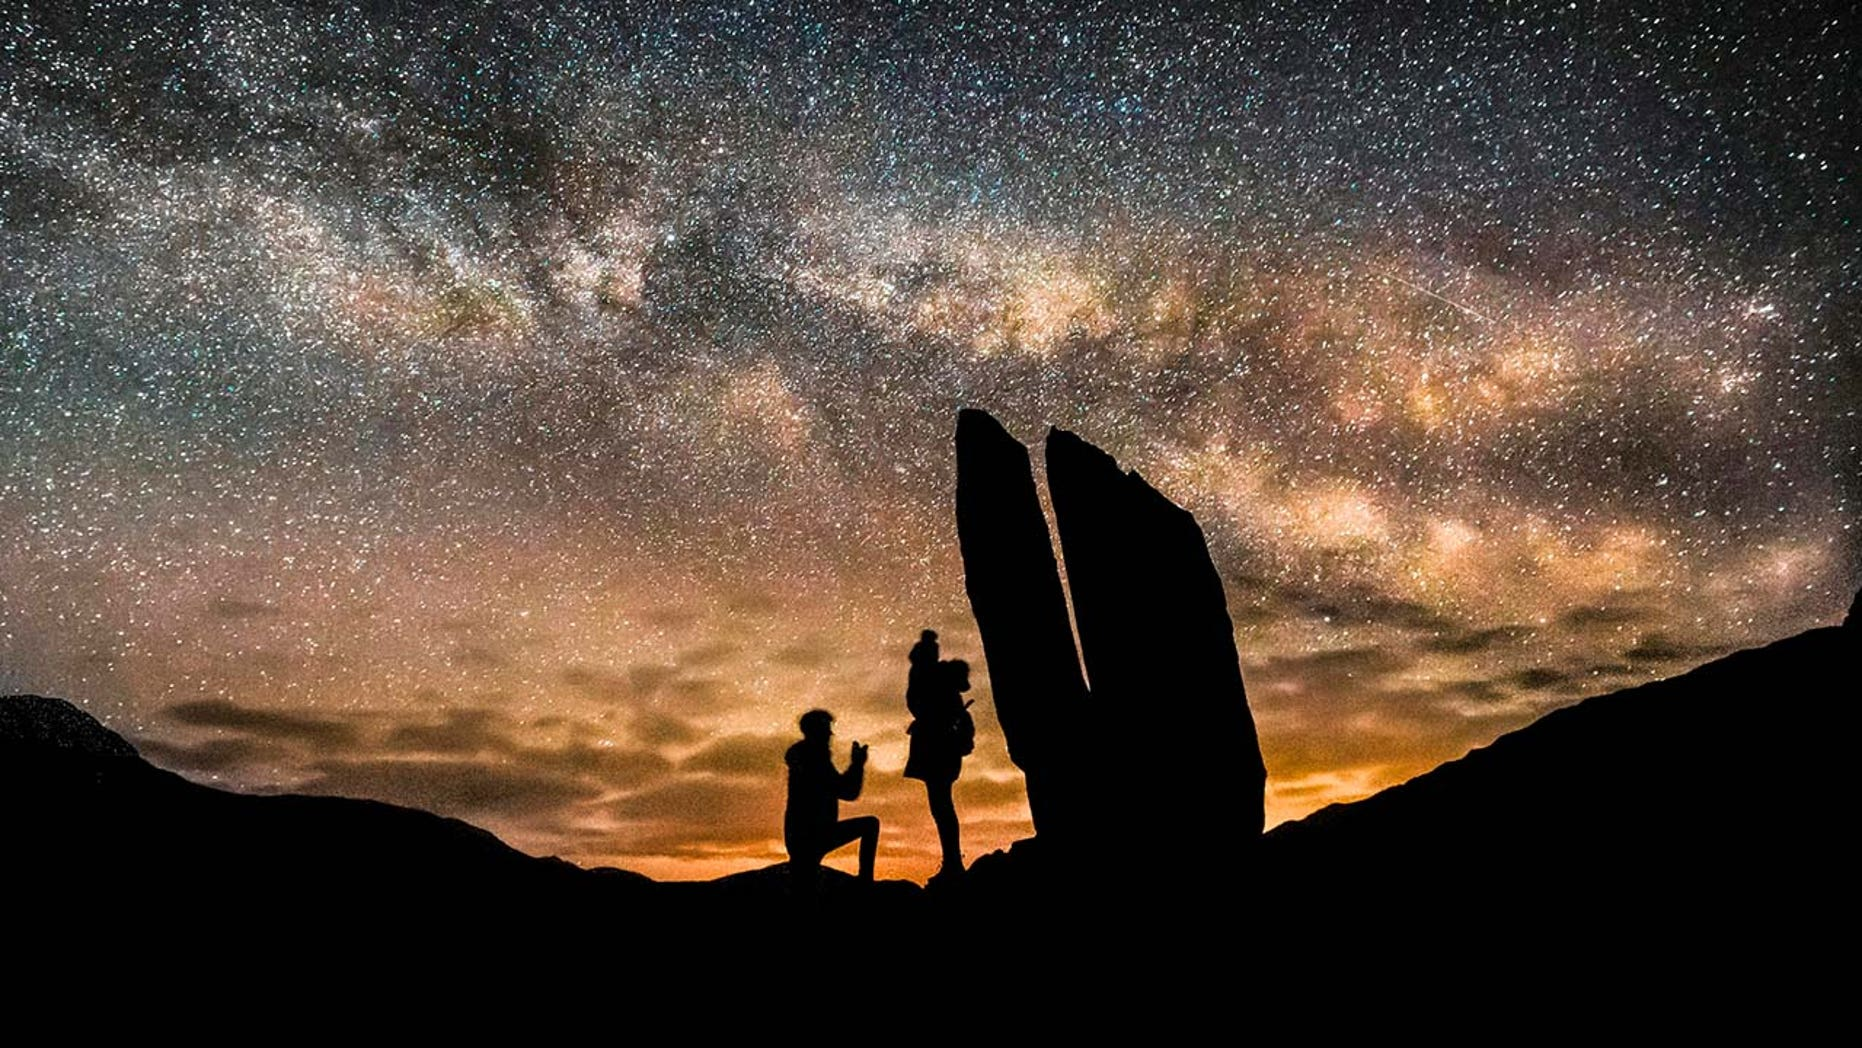 Westlake Legal Group a Man proposes to girlfriend before the Milky Way in stunning photos SWNS Sarah Ward fox-news/lifestyle/relationships fox-news/lifestyle fnc/great-outdoors fnc effa2719-0d4f-53a8-aa00-45ca8cc1c185 article